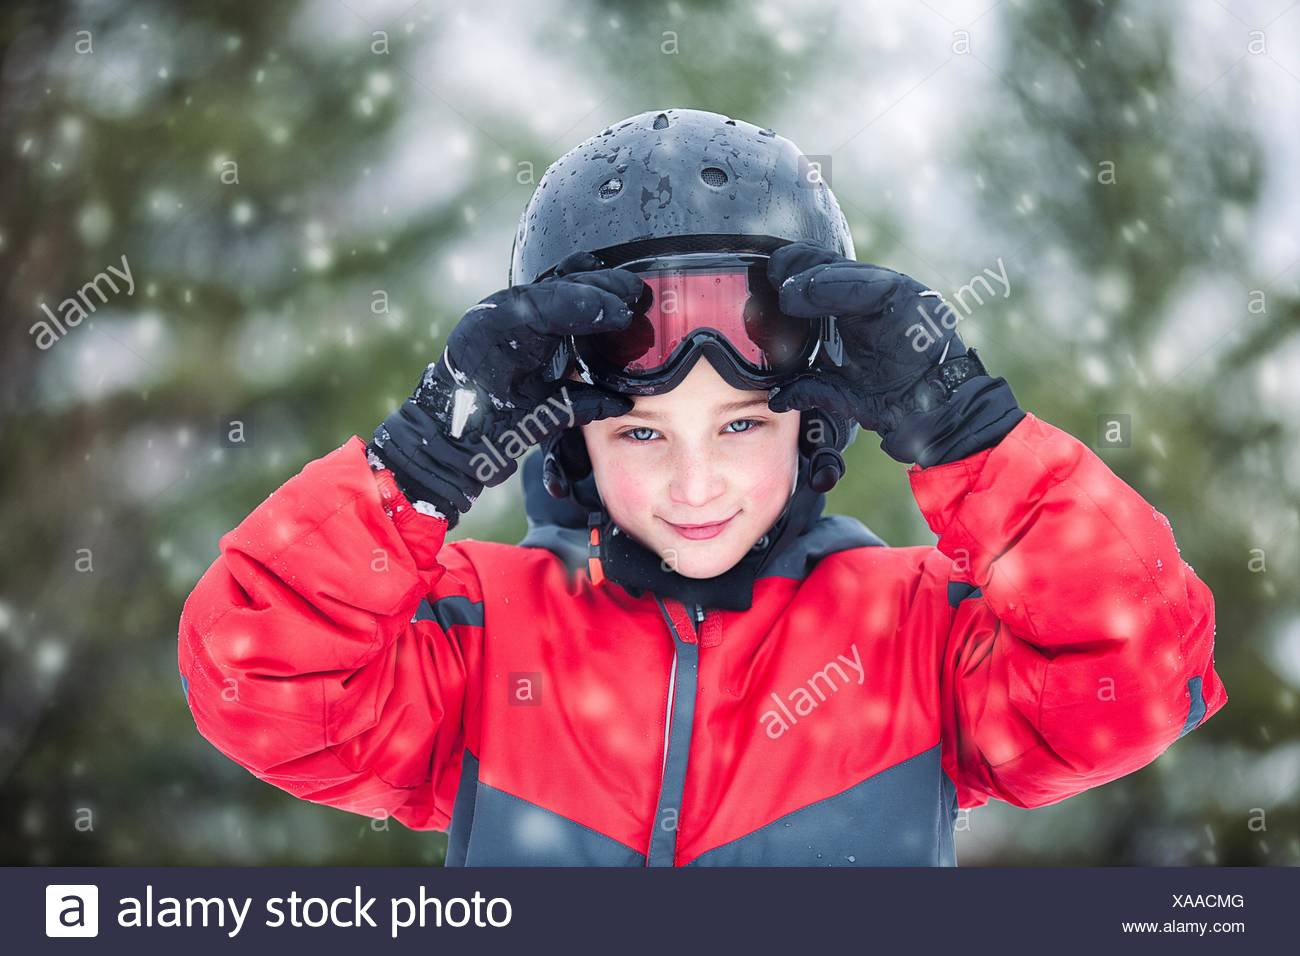 Boy wearing helmet and skiing goggles looking at camera smiling, snowing - Stock Image